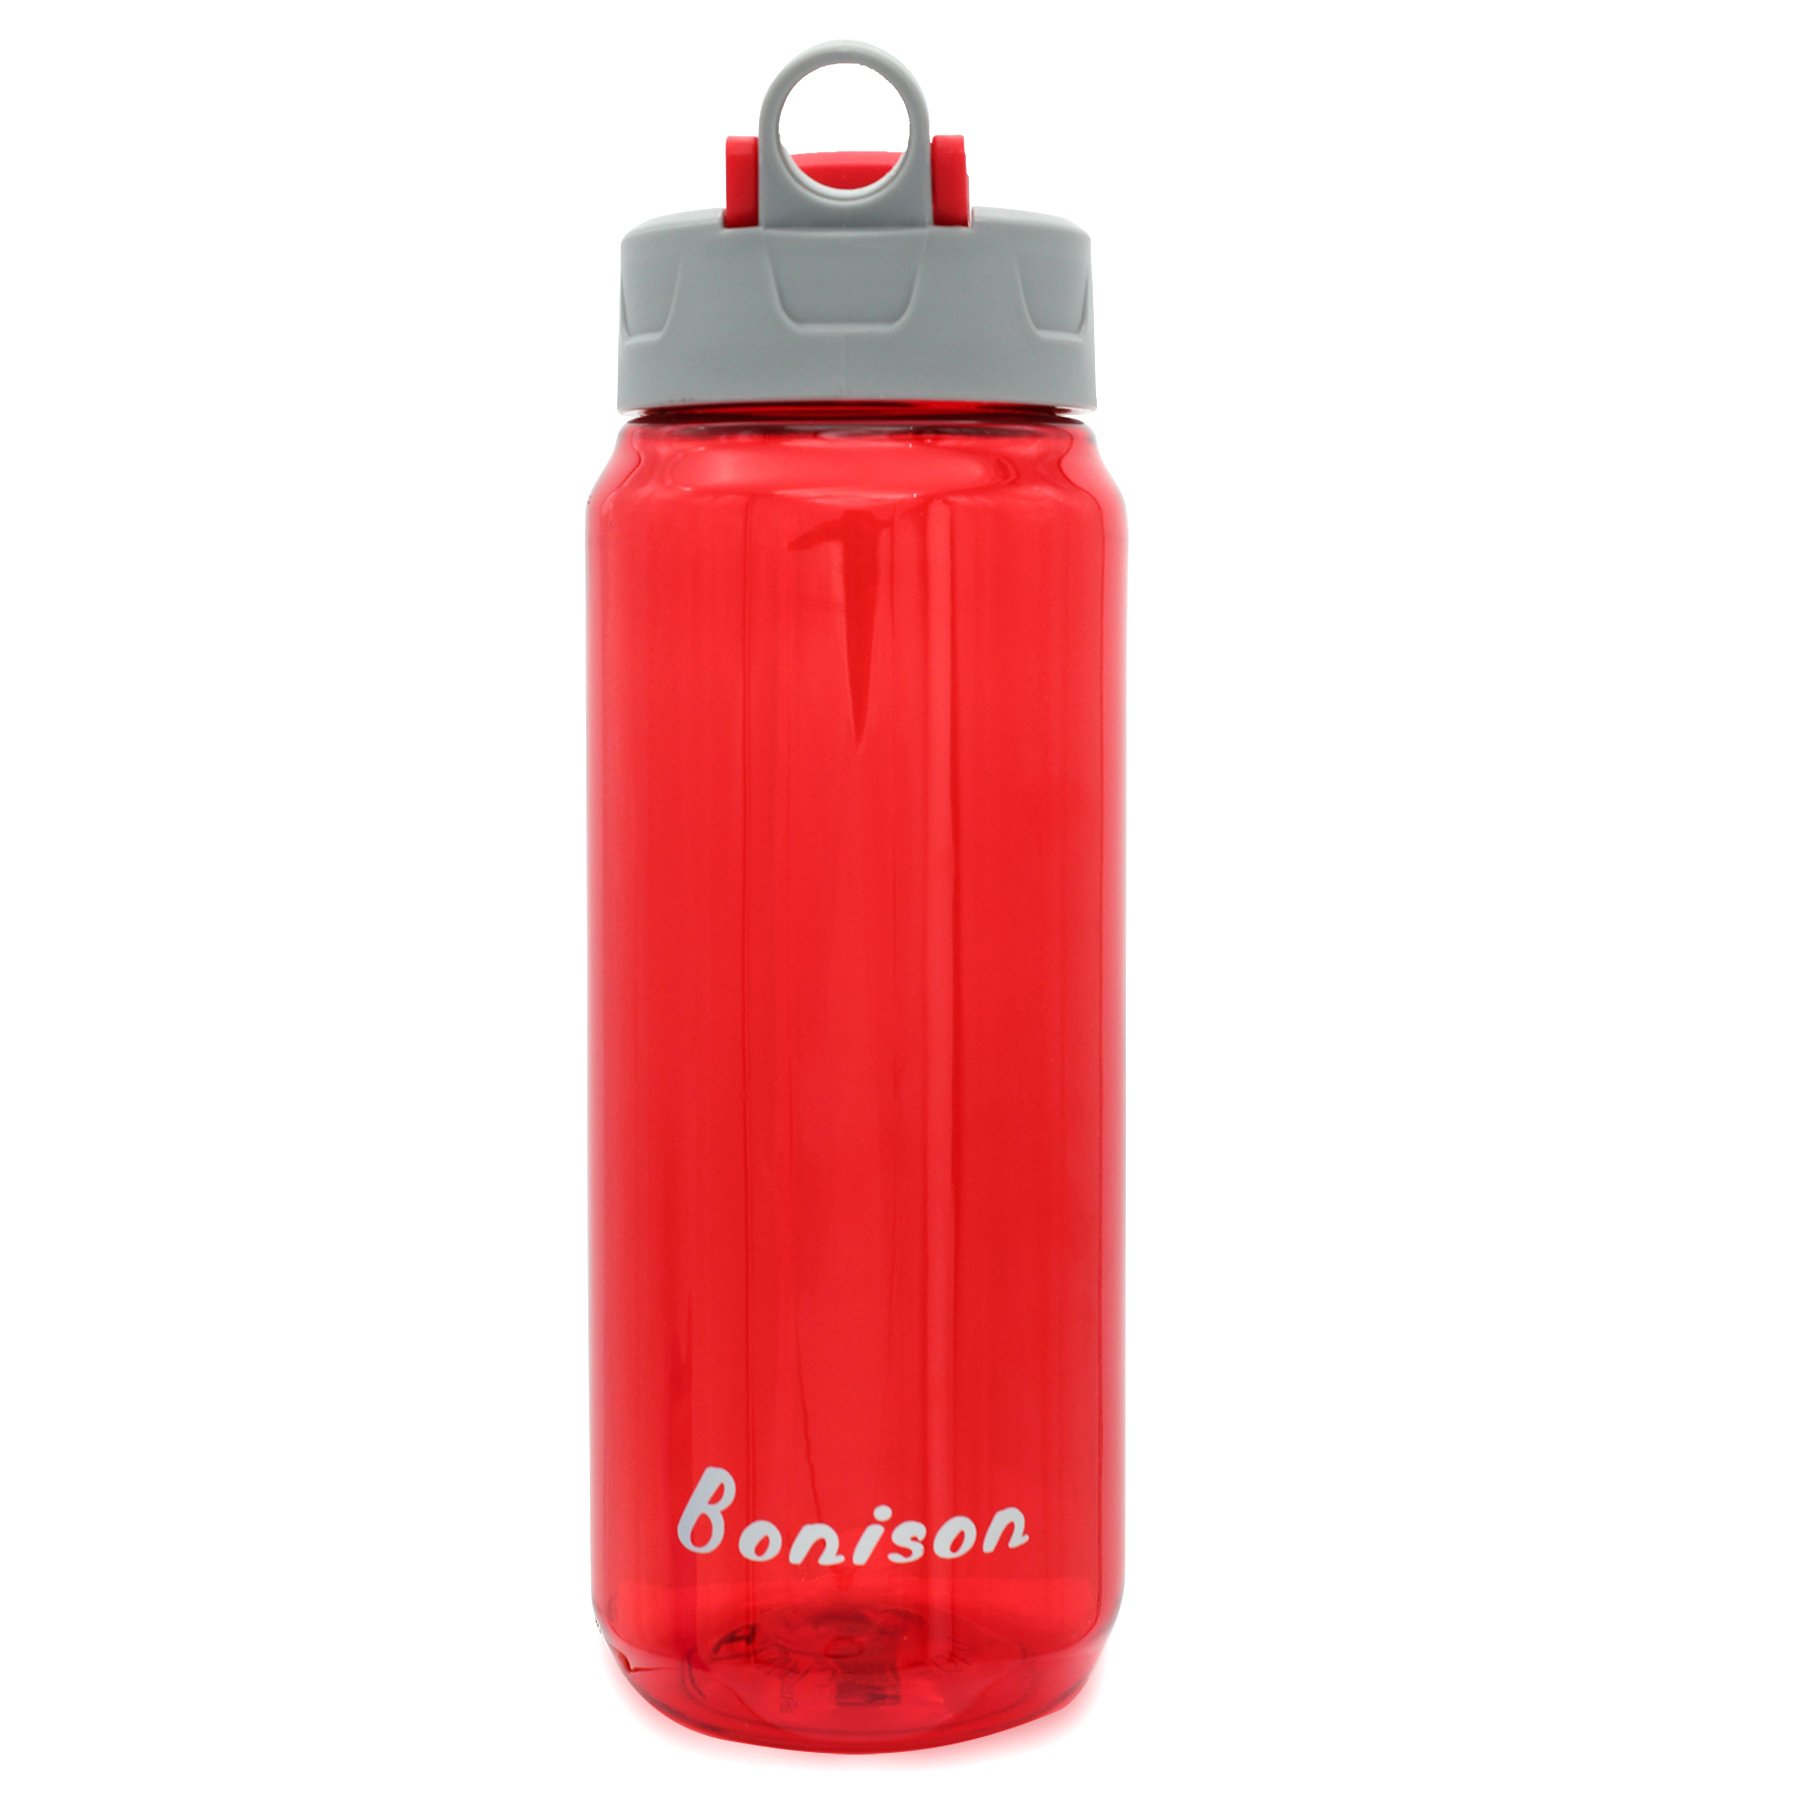 Clearance Sale-25 Oz Shake Bottle With Flip Top Spout Mixer Ball To Mix Protein Powder Easy Shaker Water Bottle (Red)